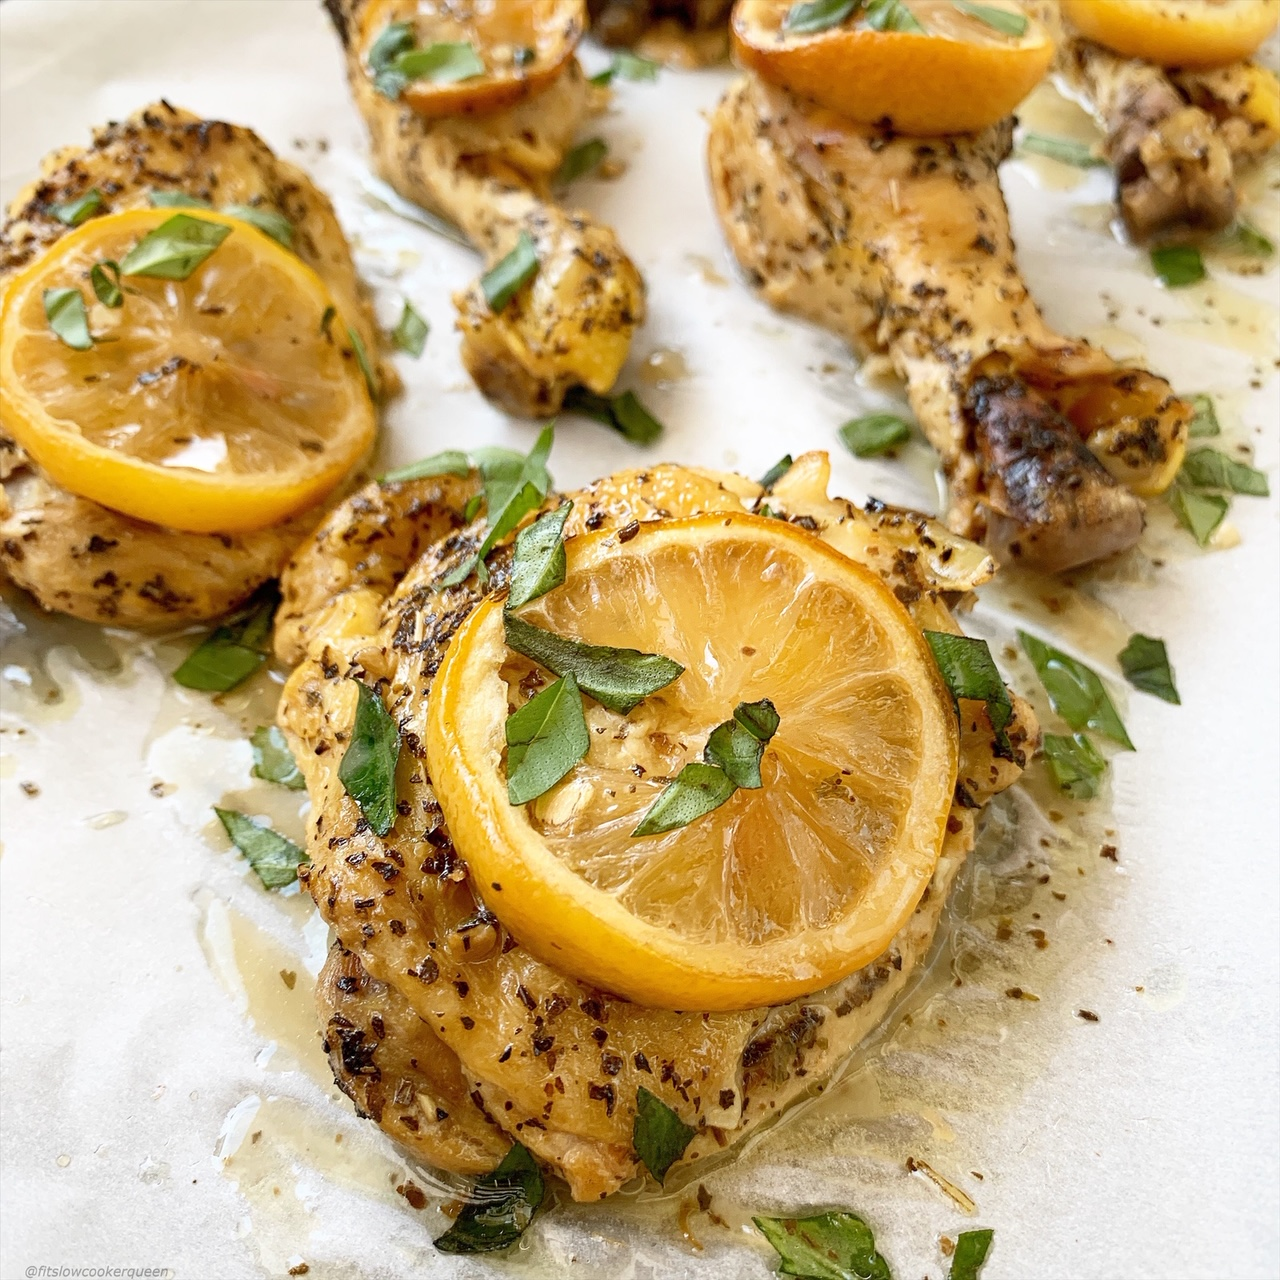 This lemon basil chicken can be made in your slow cooker or Instant Pot. Using a simple, homemade & healthy sauce, this lemony chicken recipe is easy and healthy.